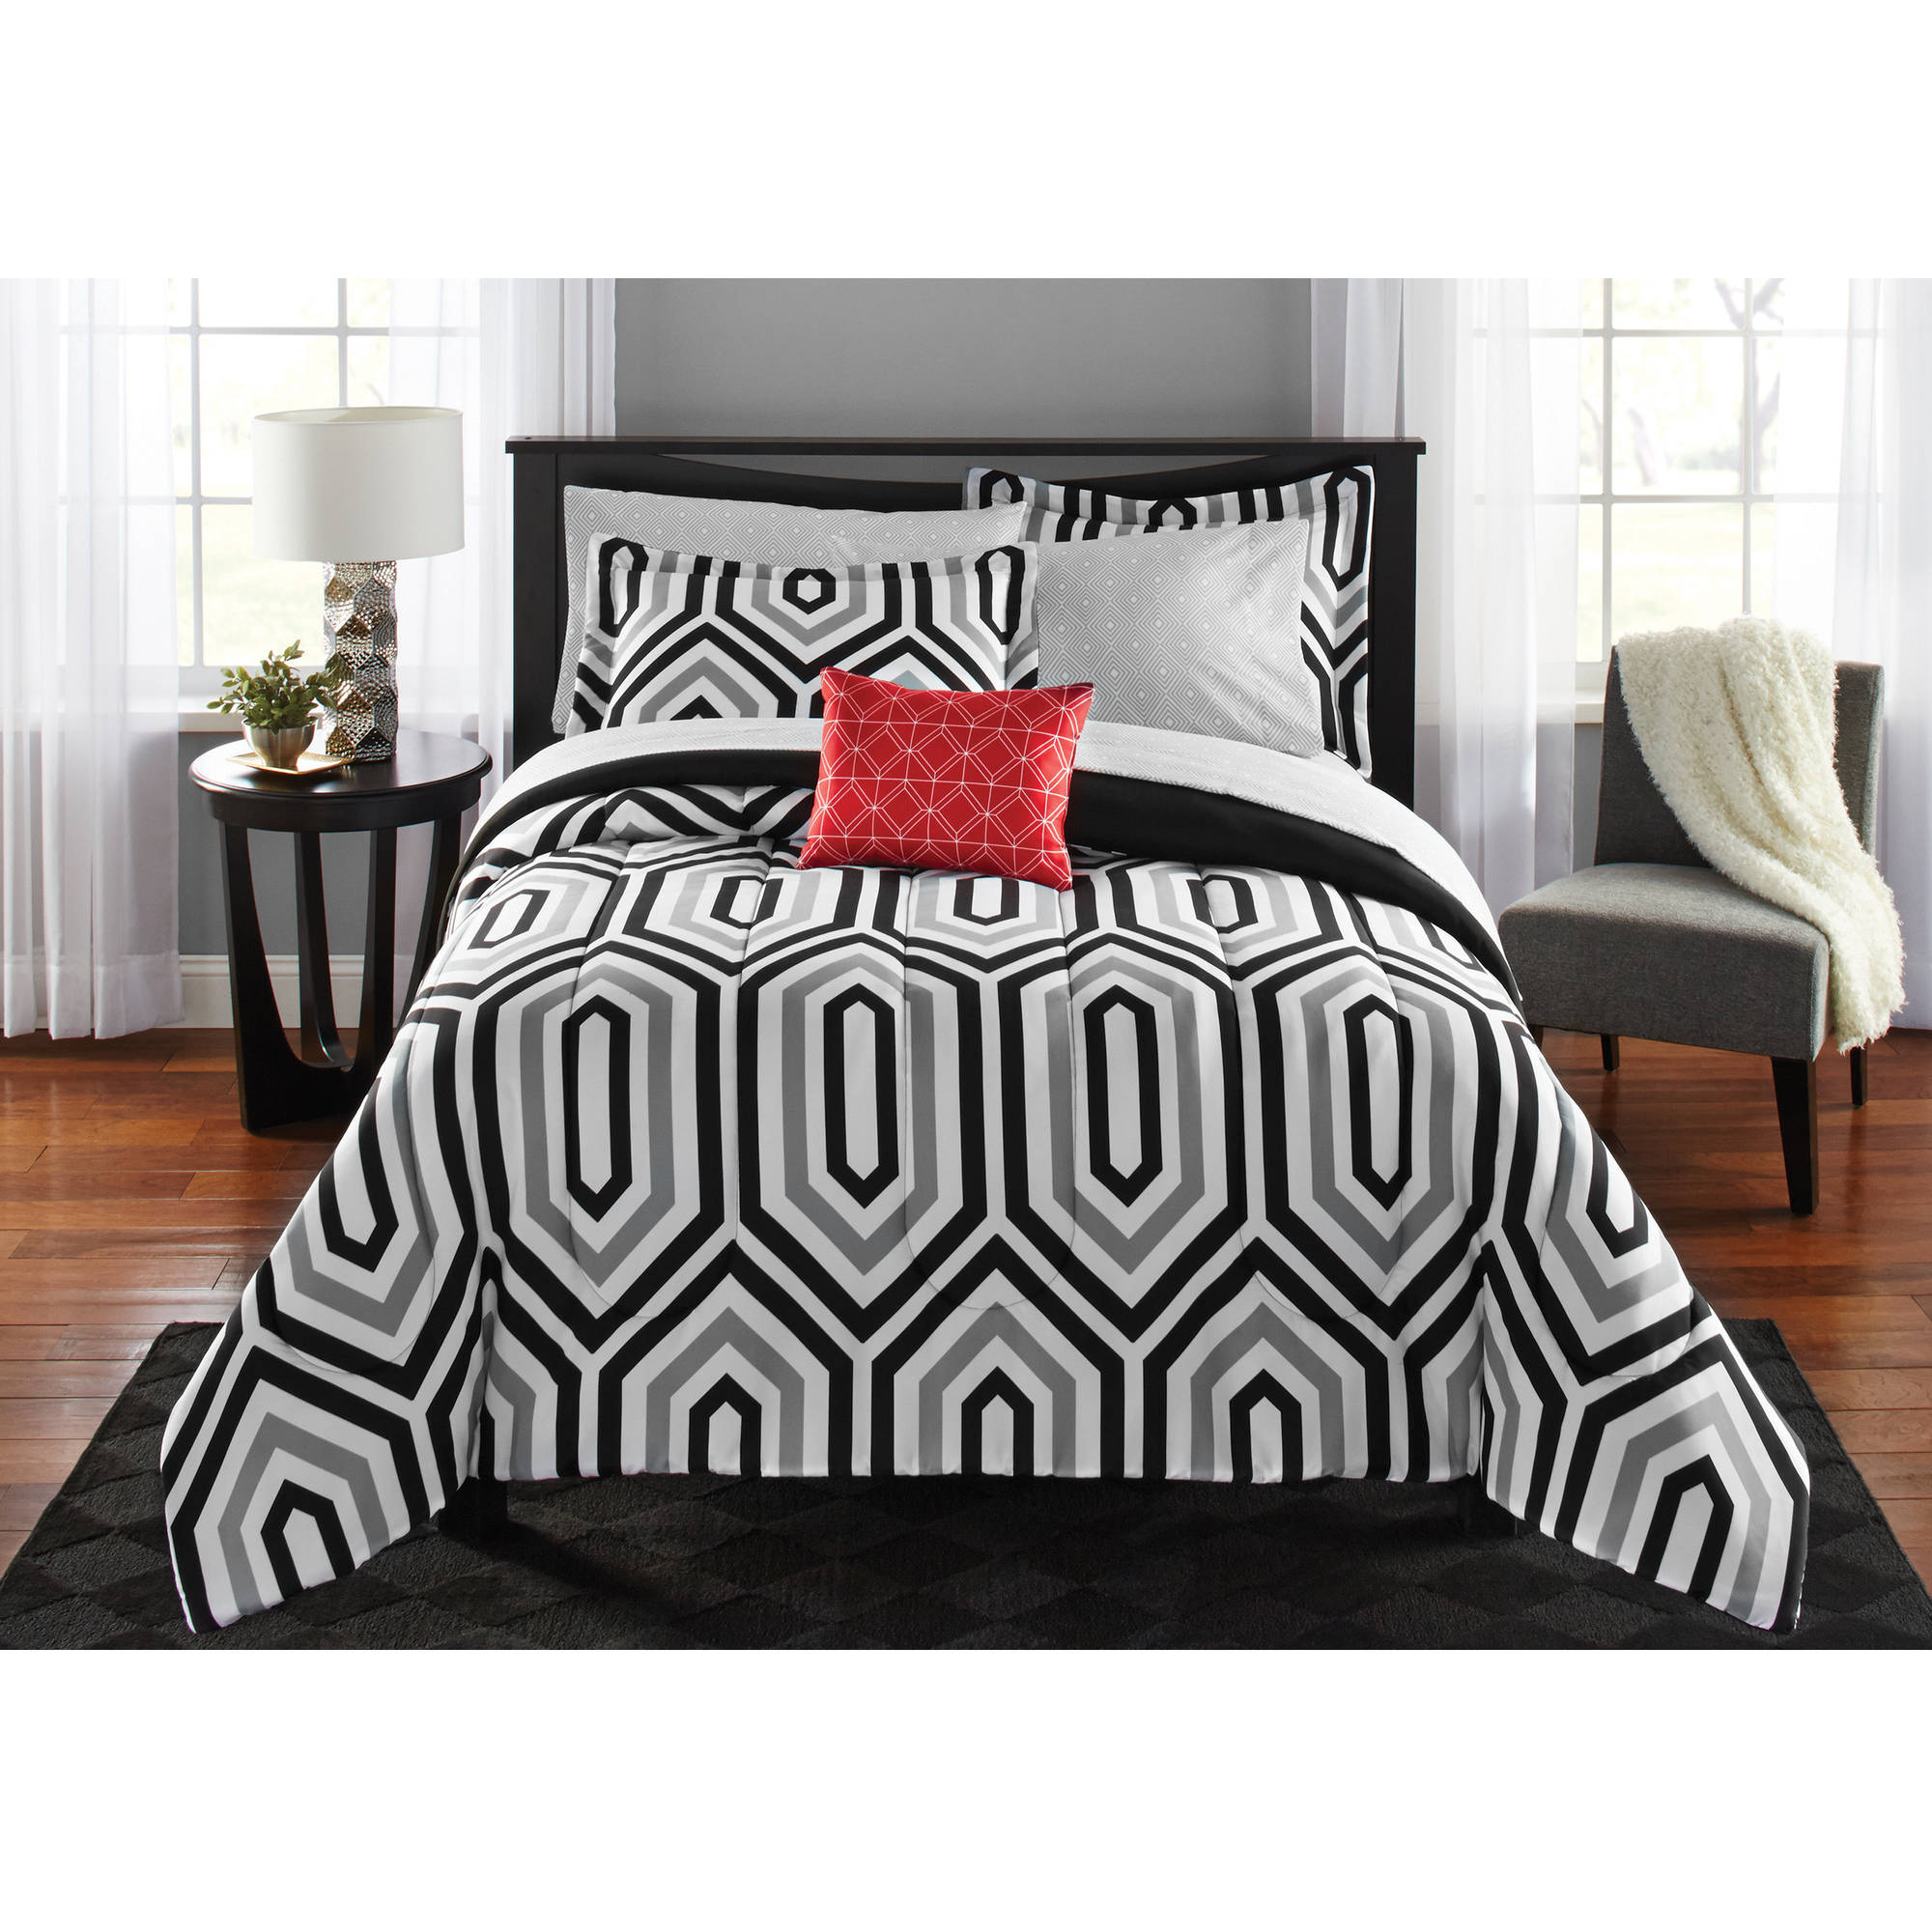 Mainstays Hexagon Bed in a Bag Bedding Set